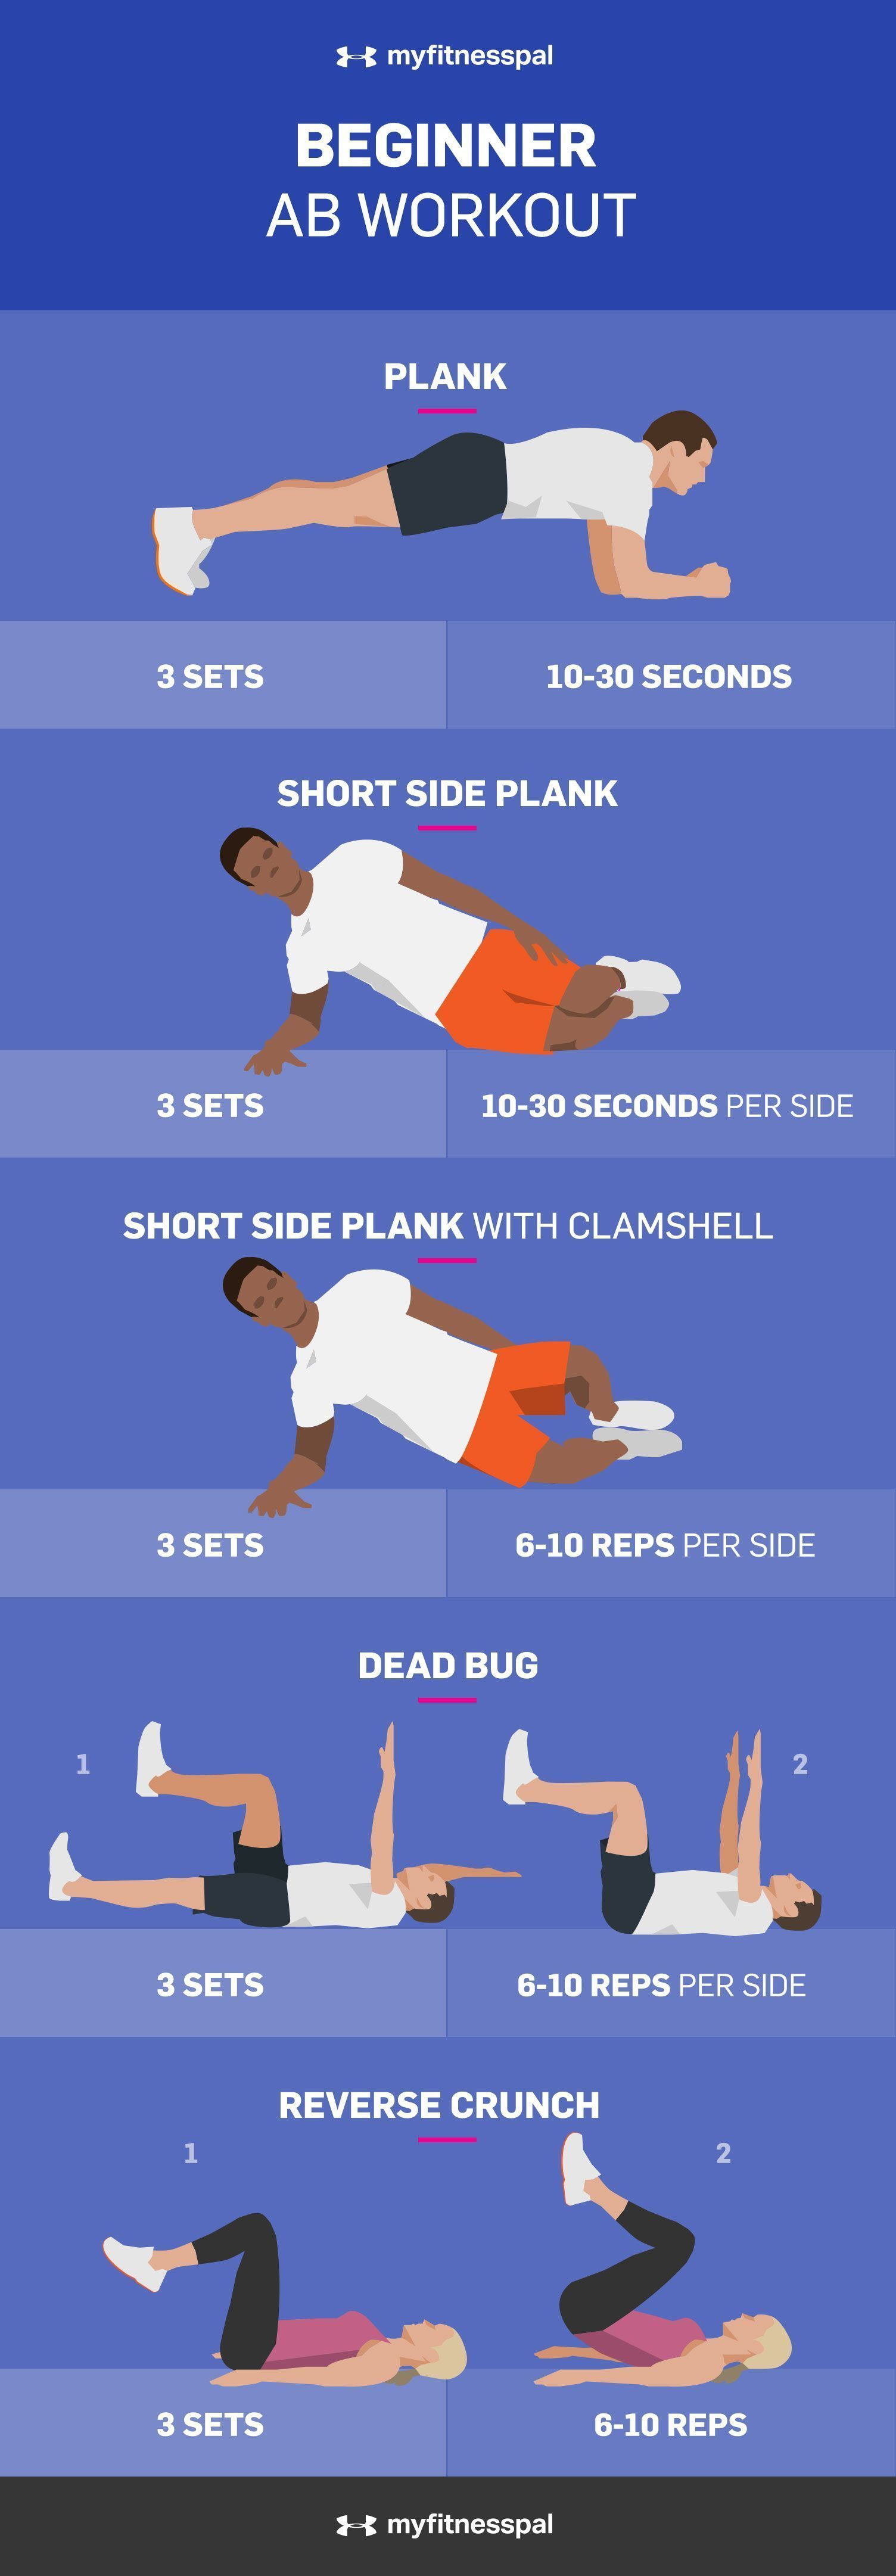 Ab Workouts That Don't Require Equipment No gym? No equipment? No problem. These three at-home abdominal workouts will…No gym? No equipment? No problem. These three at-home abdominal workouts will…